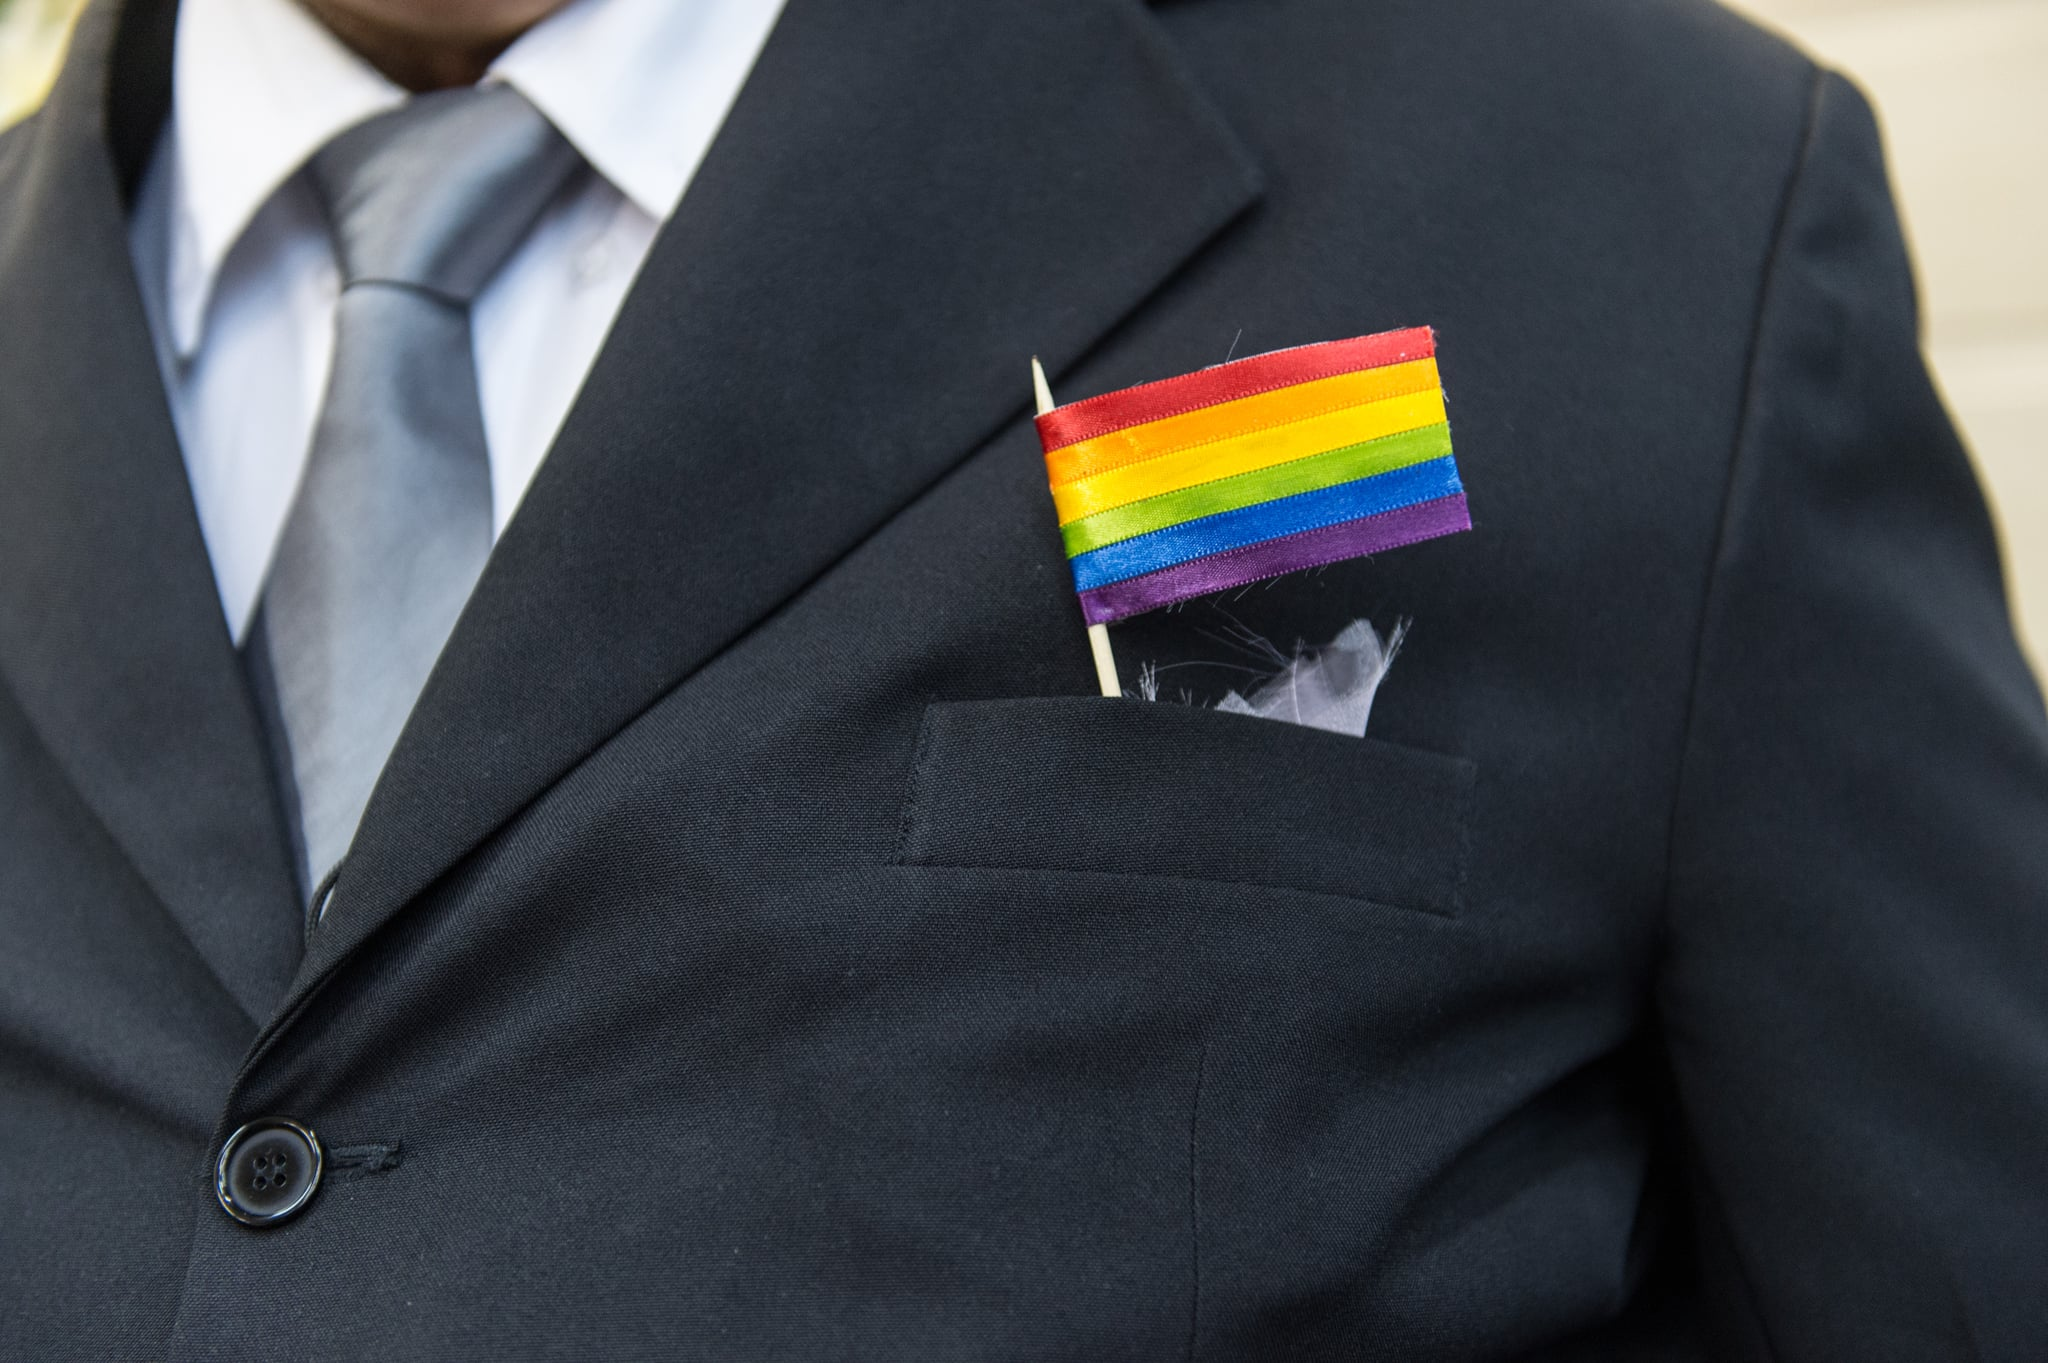 Scotland Joins Worldwide Gay-Marriage Wins